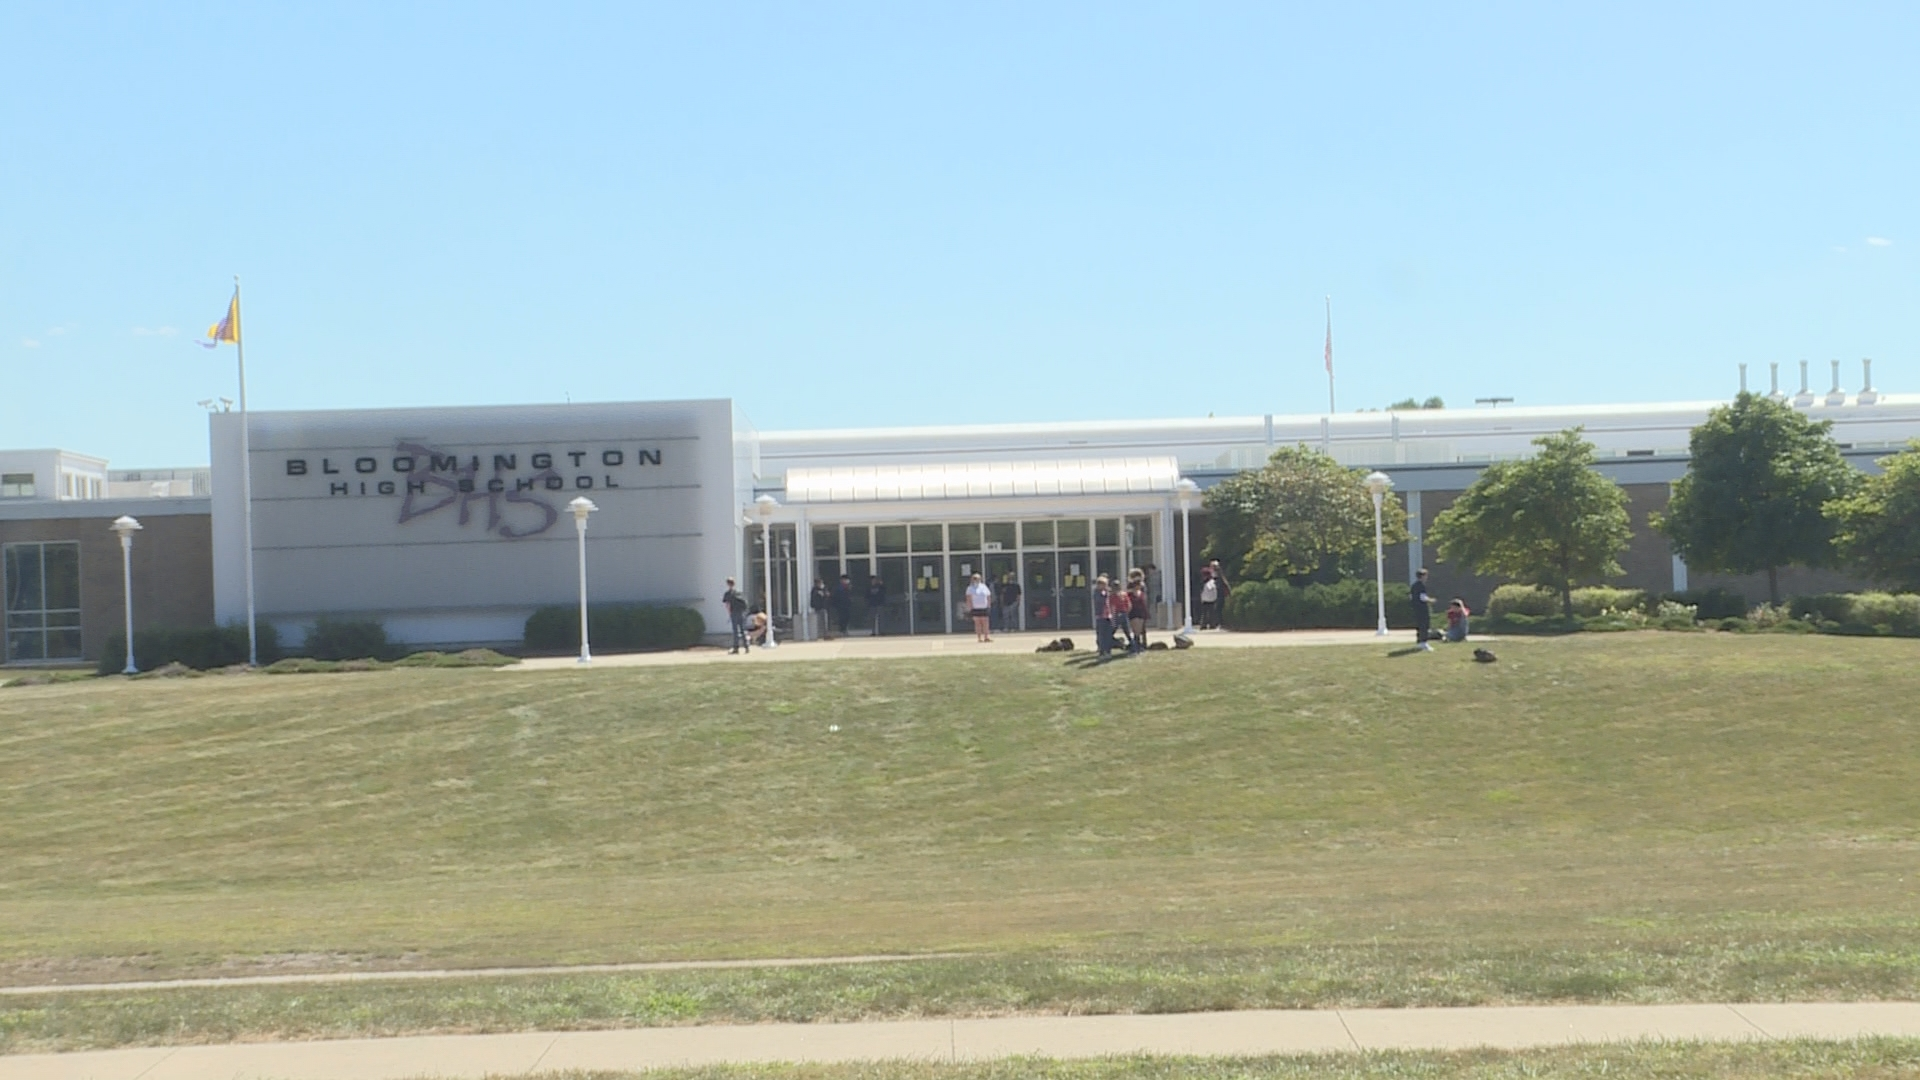 One Bloomington High School student expelled following brawl that left officer hospitalized